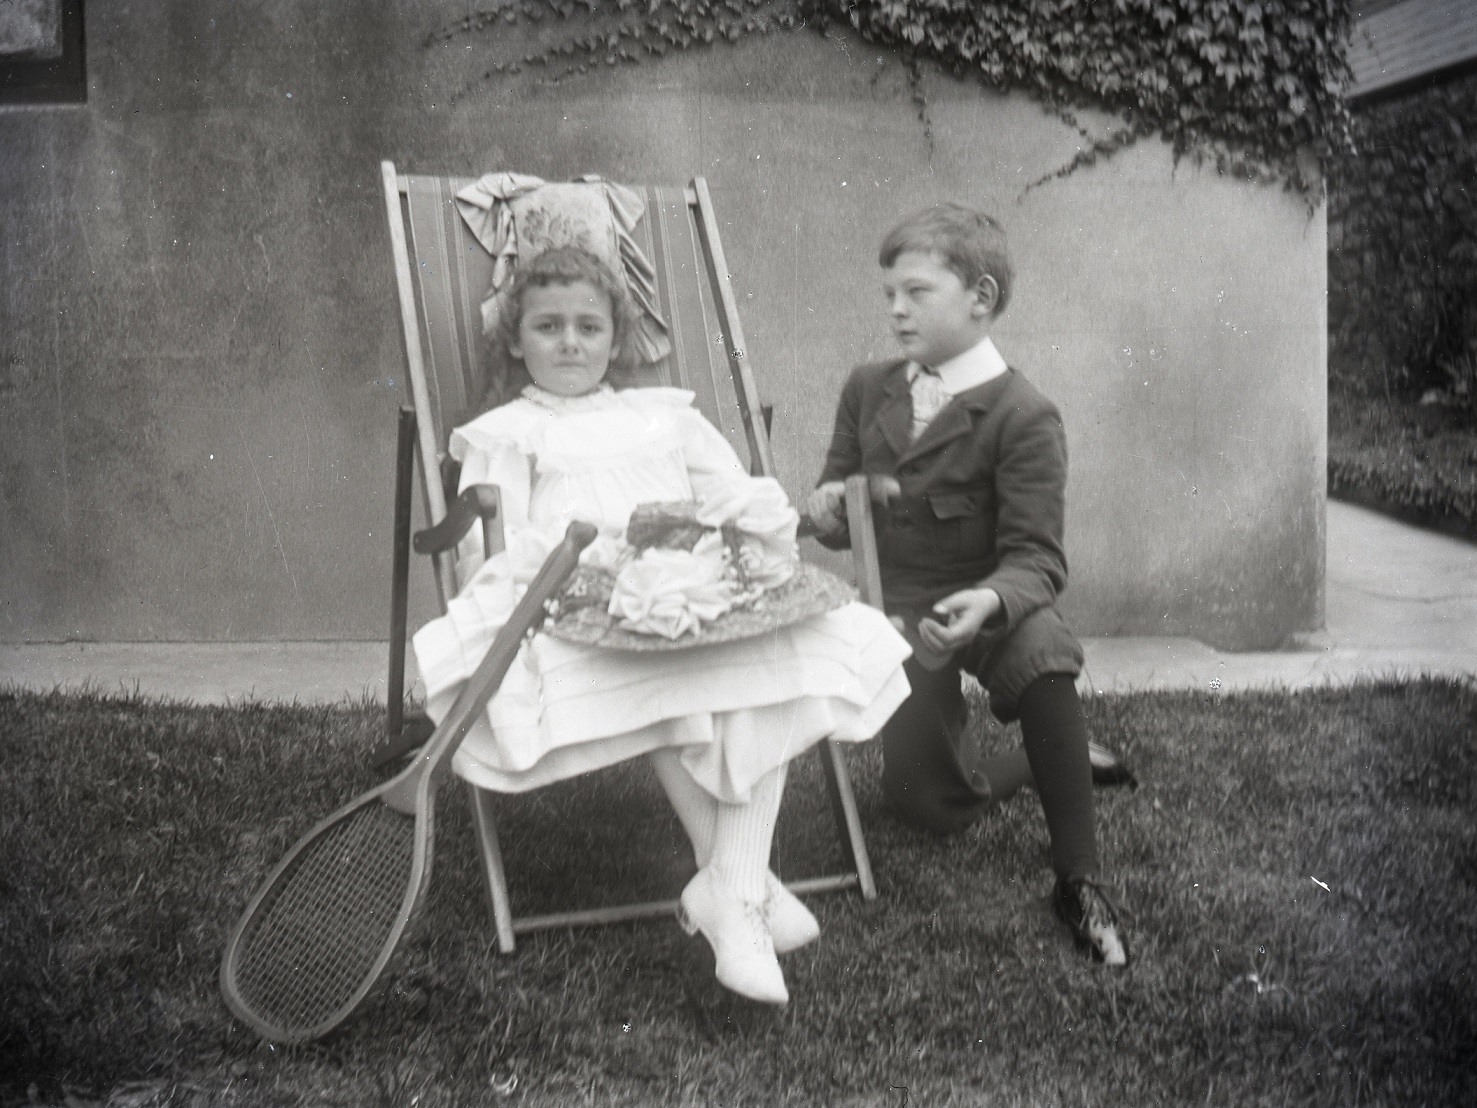 Archive black and white image of a girl and boy